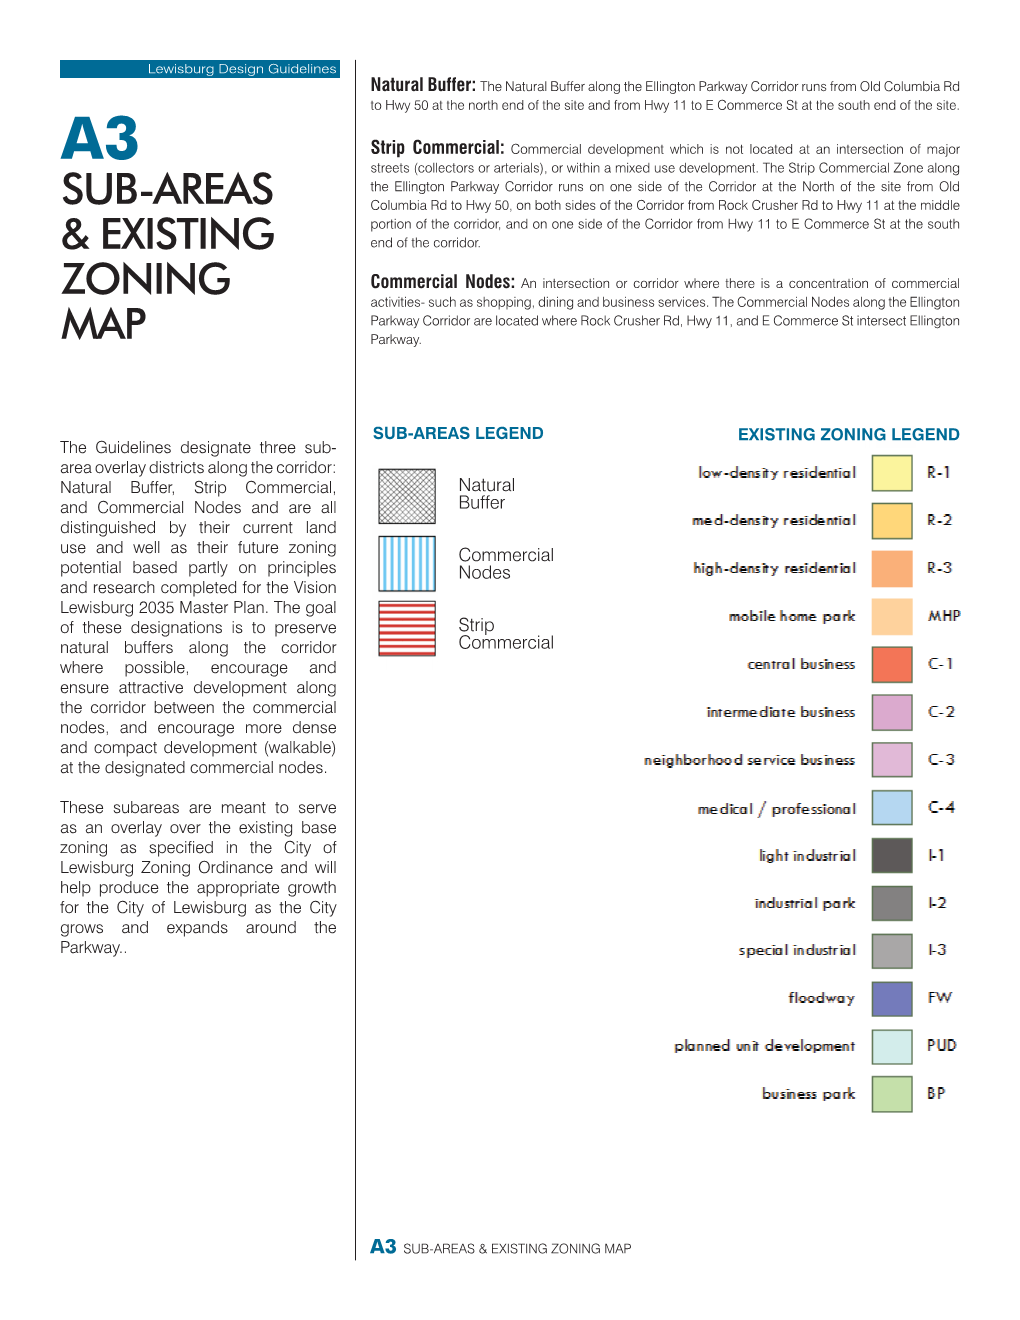 Sample page - Zoning Map 1